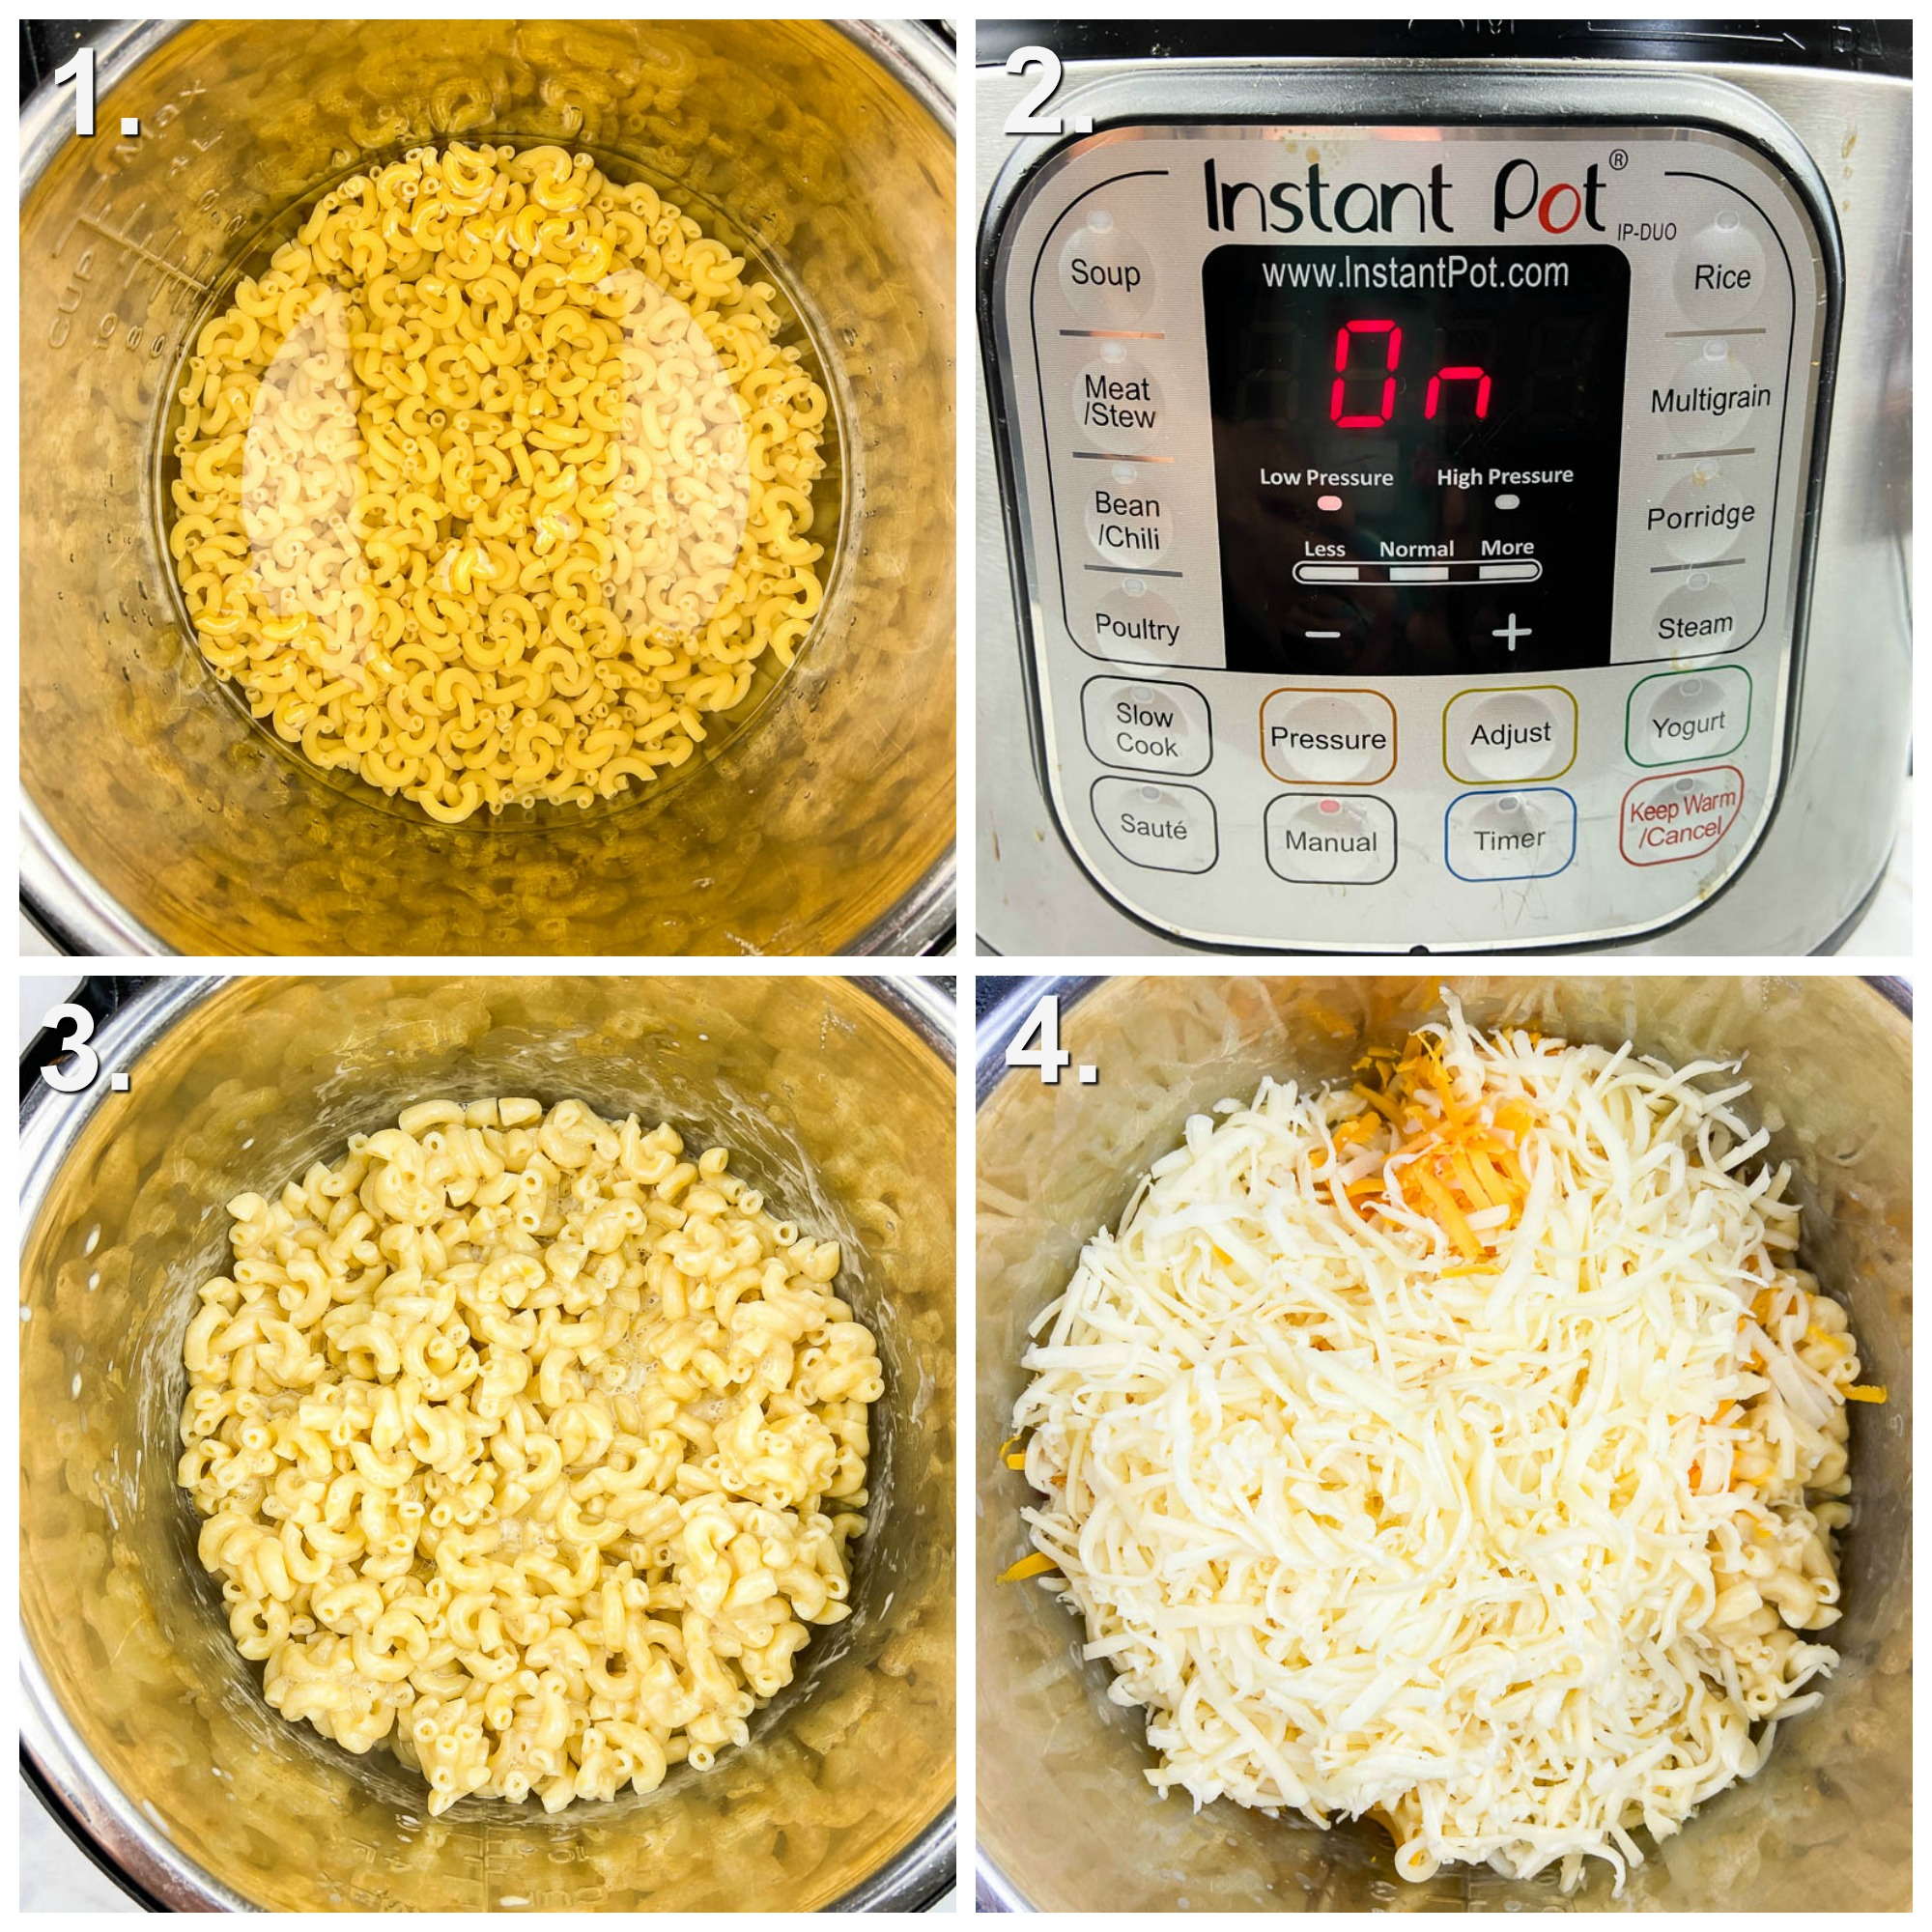 Step by Step Photos for how to make instant pot mac and cheese. Photo 1 cooking pasta in instant pot. Photo 2: Instant Pot on Photo 3: cooked macaroni Photo 4: Cheese on macaroni in instant pot